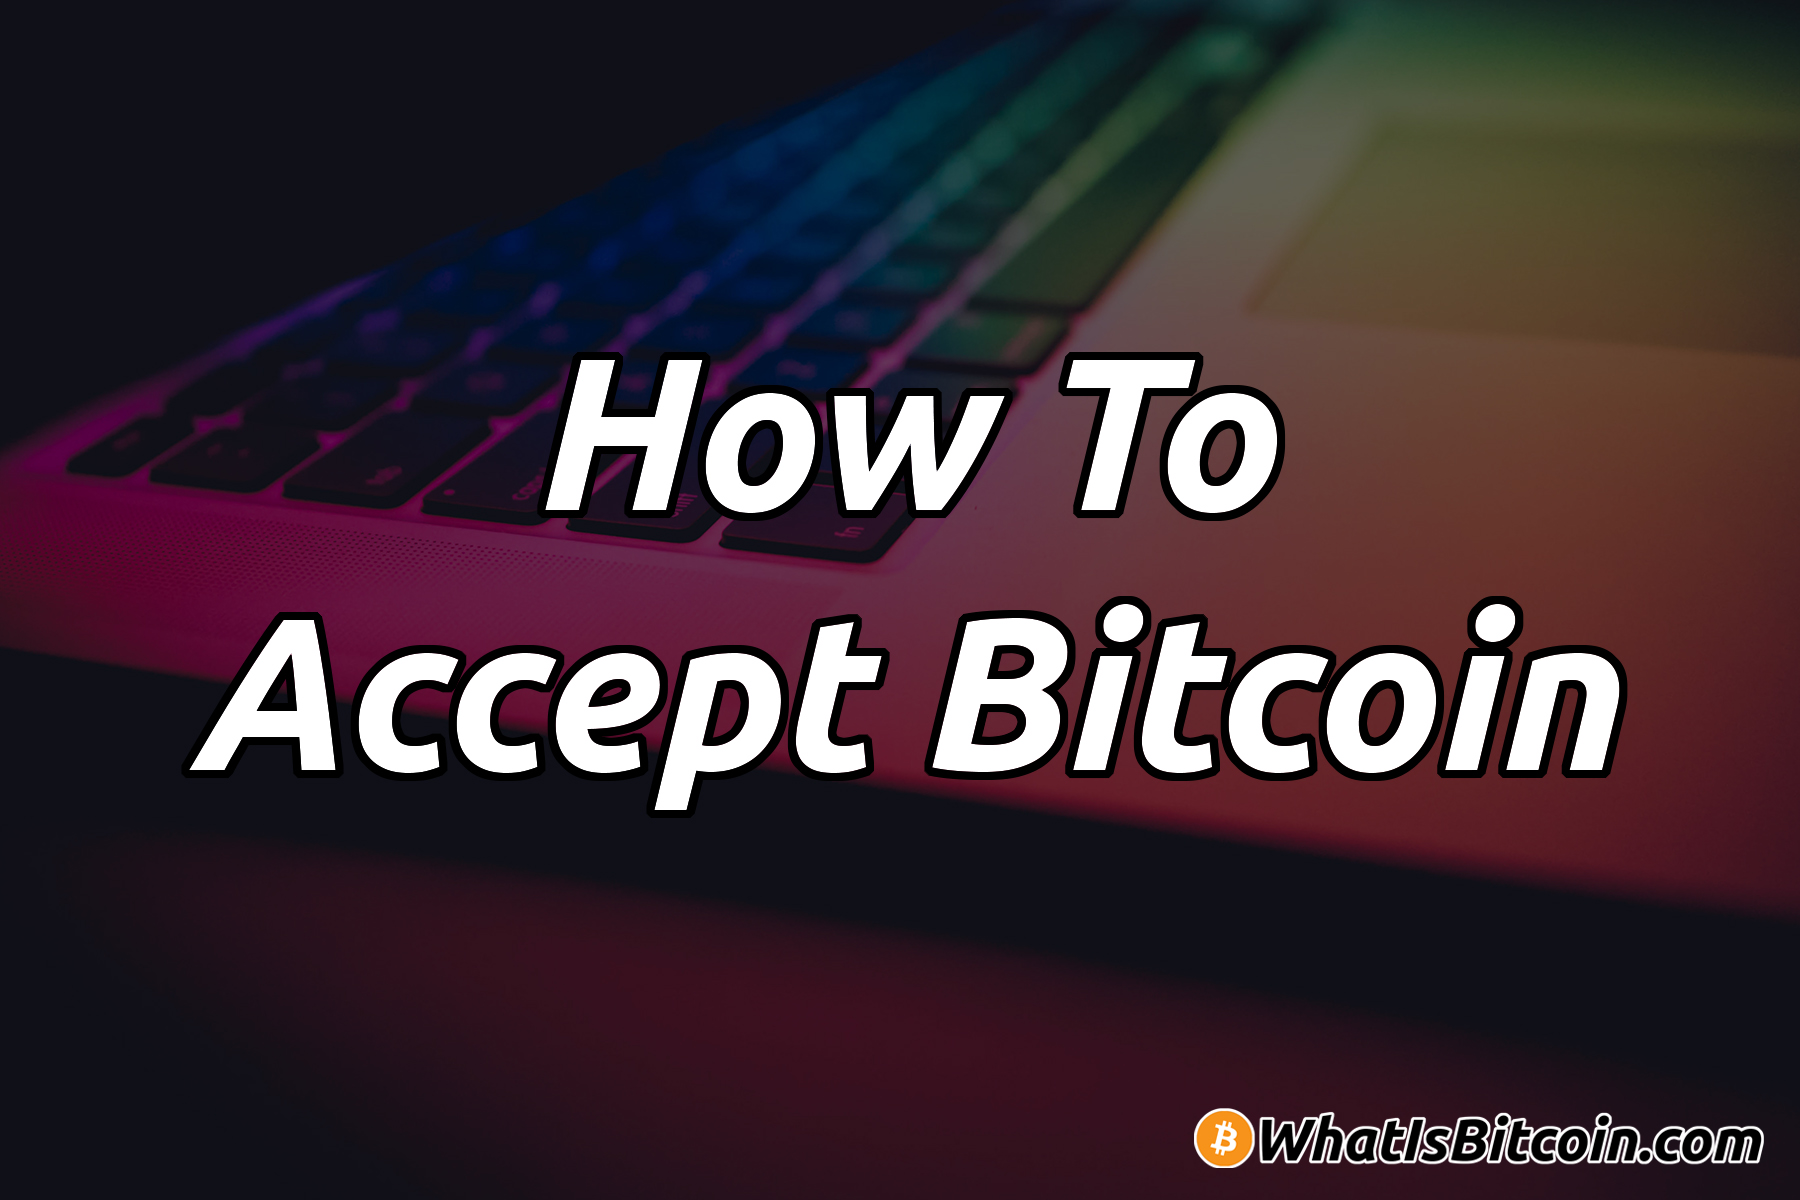 How To Accept Bitcoin